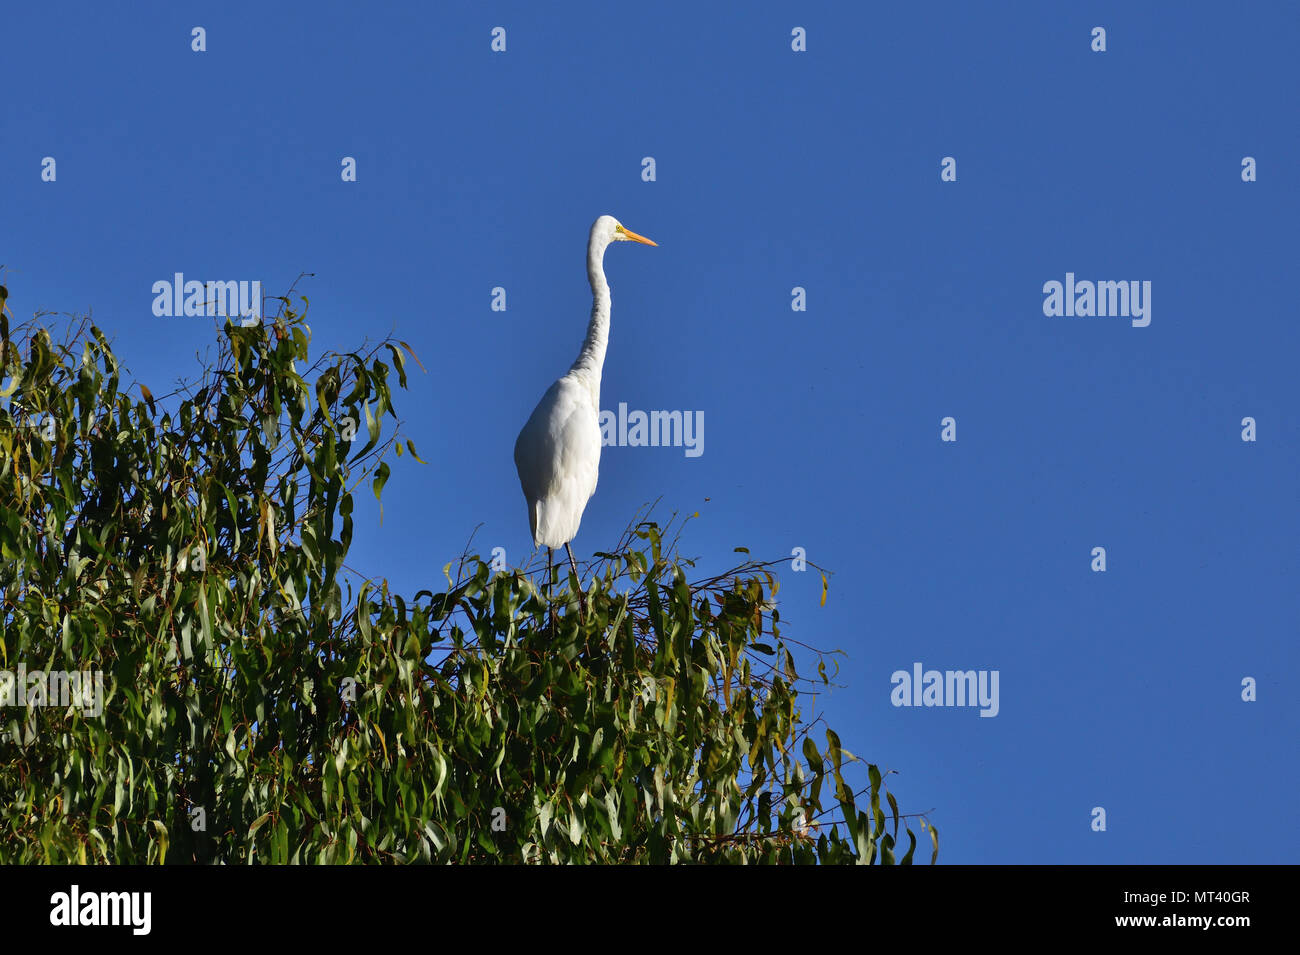 An Australian, Brisbane Queensland nonbreeding Great Egret, Ardea alba resting high up on a Tree - Stock Image